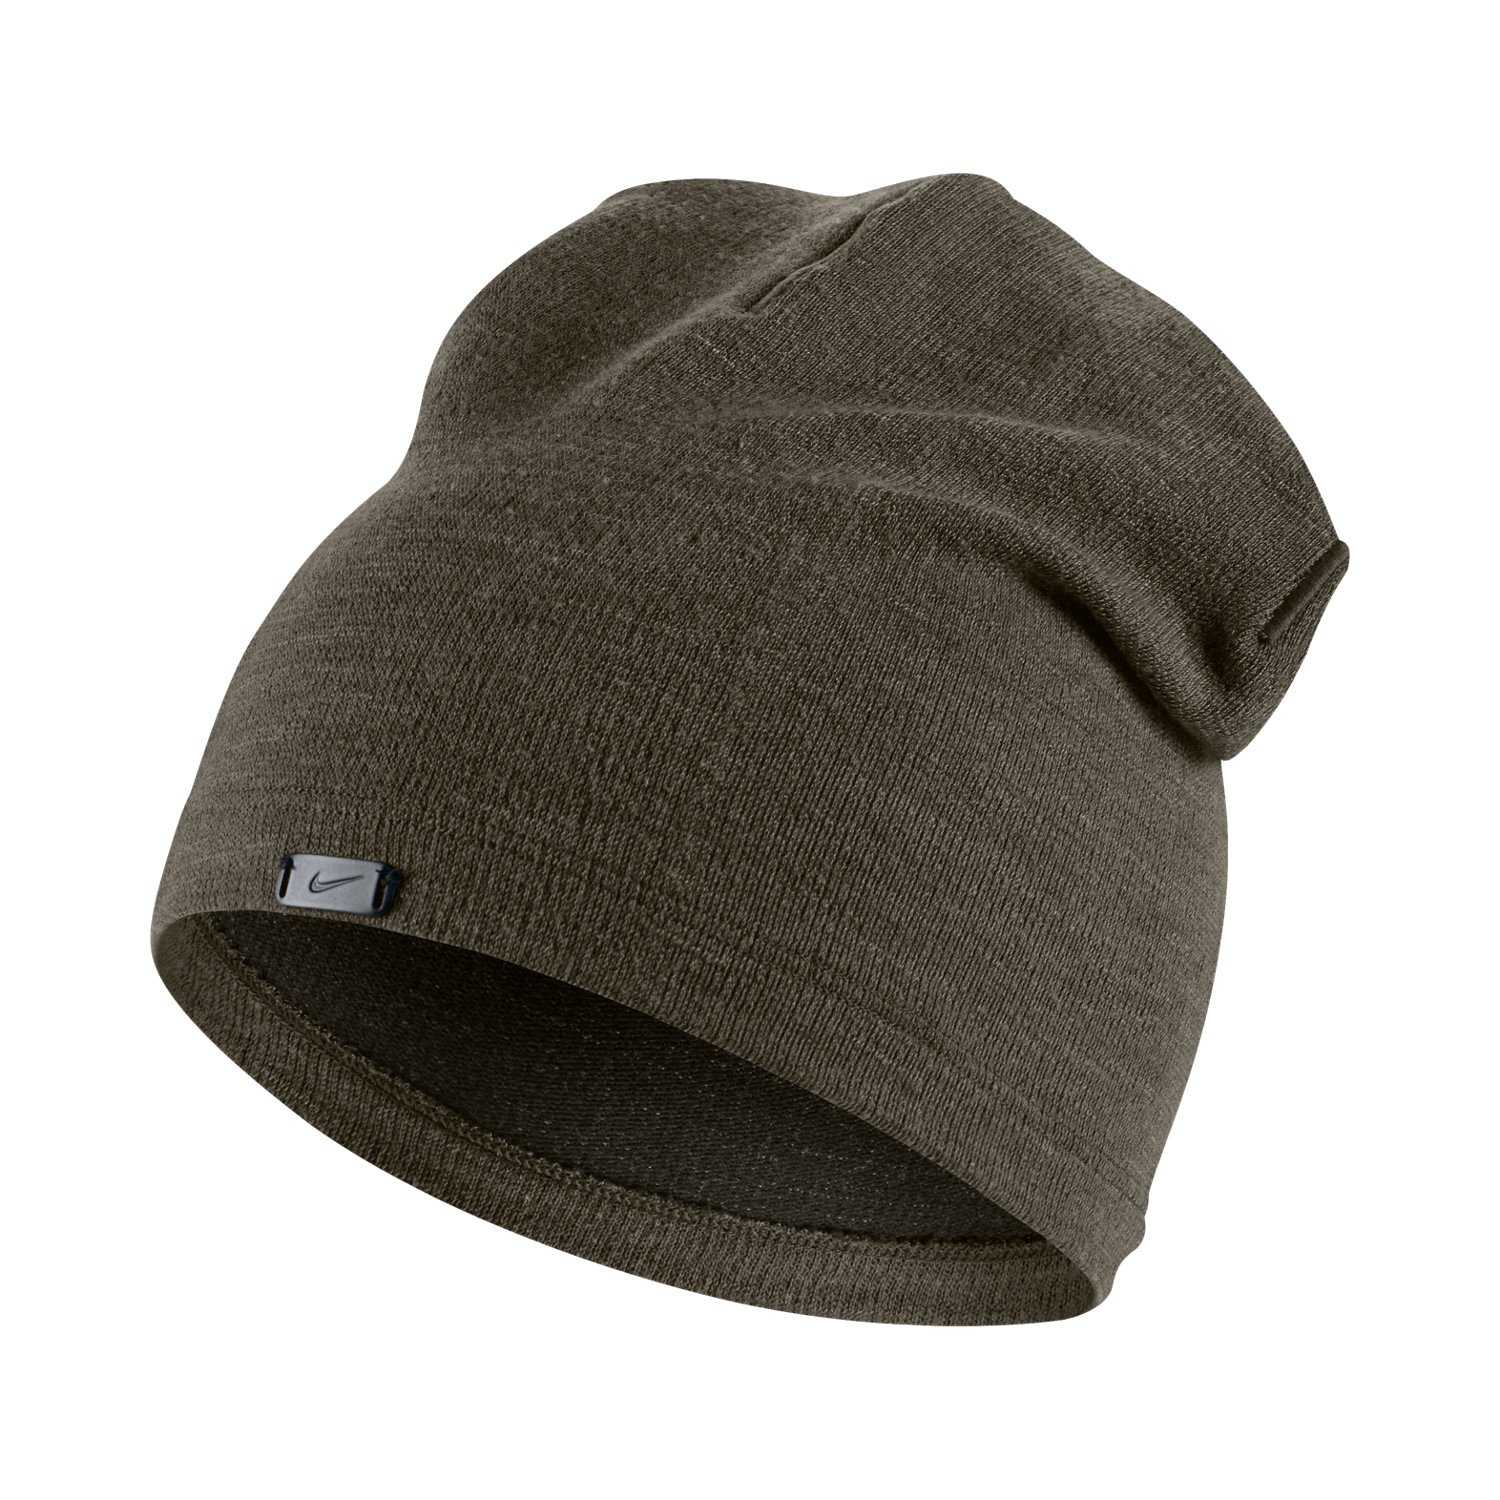 90ce729e911 Amazon.com   Nike Golf Unisex Wool Knit Golf Hat Khaki 811562-325 One Size  Fits All   Sports   Outdoors